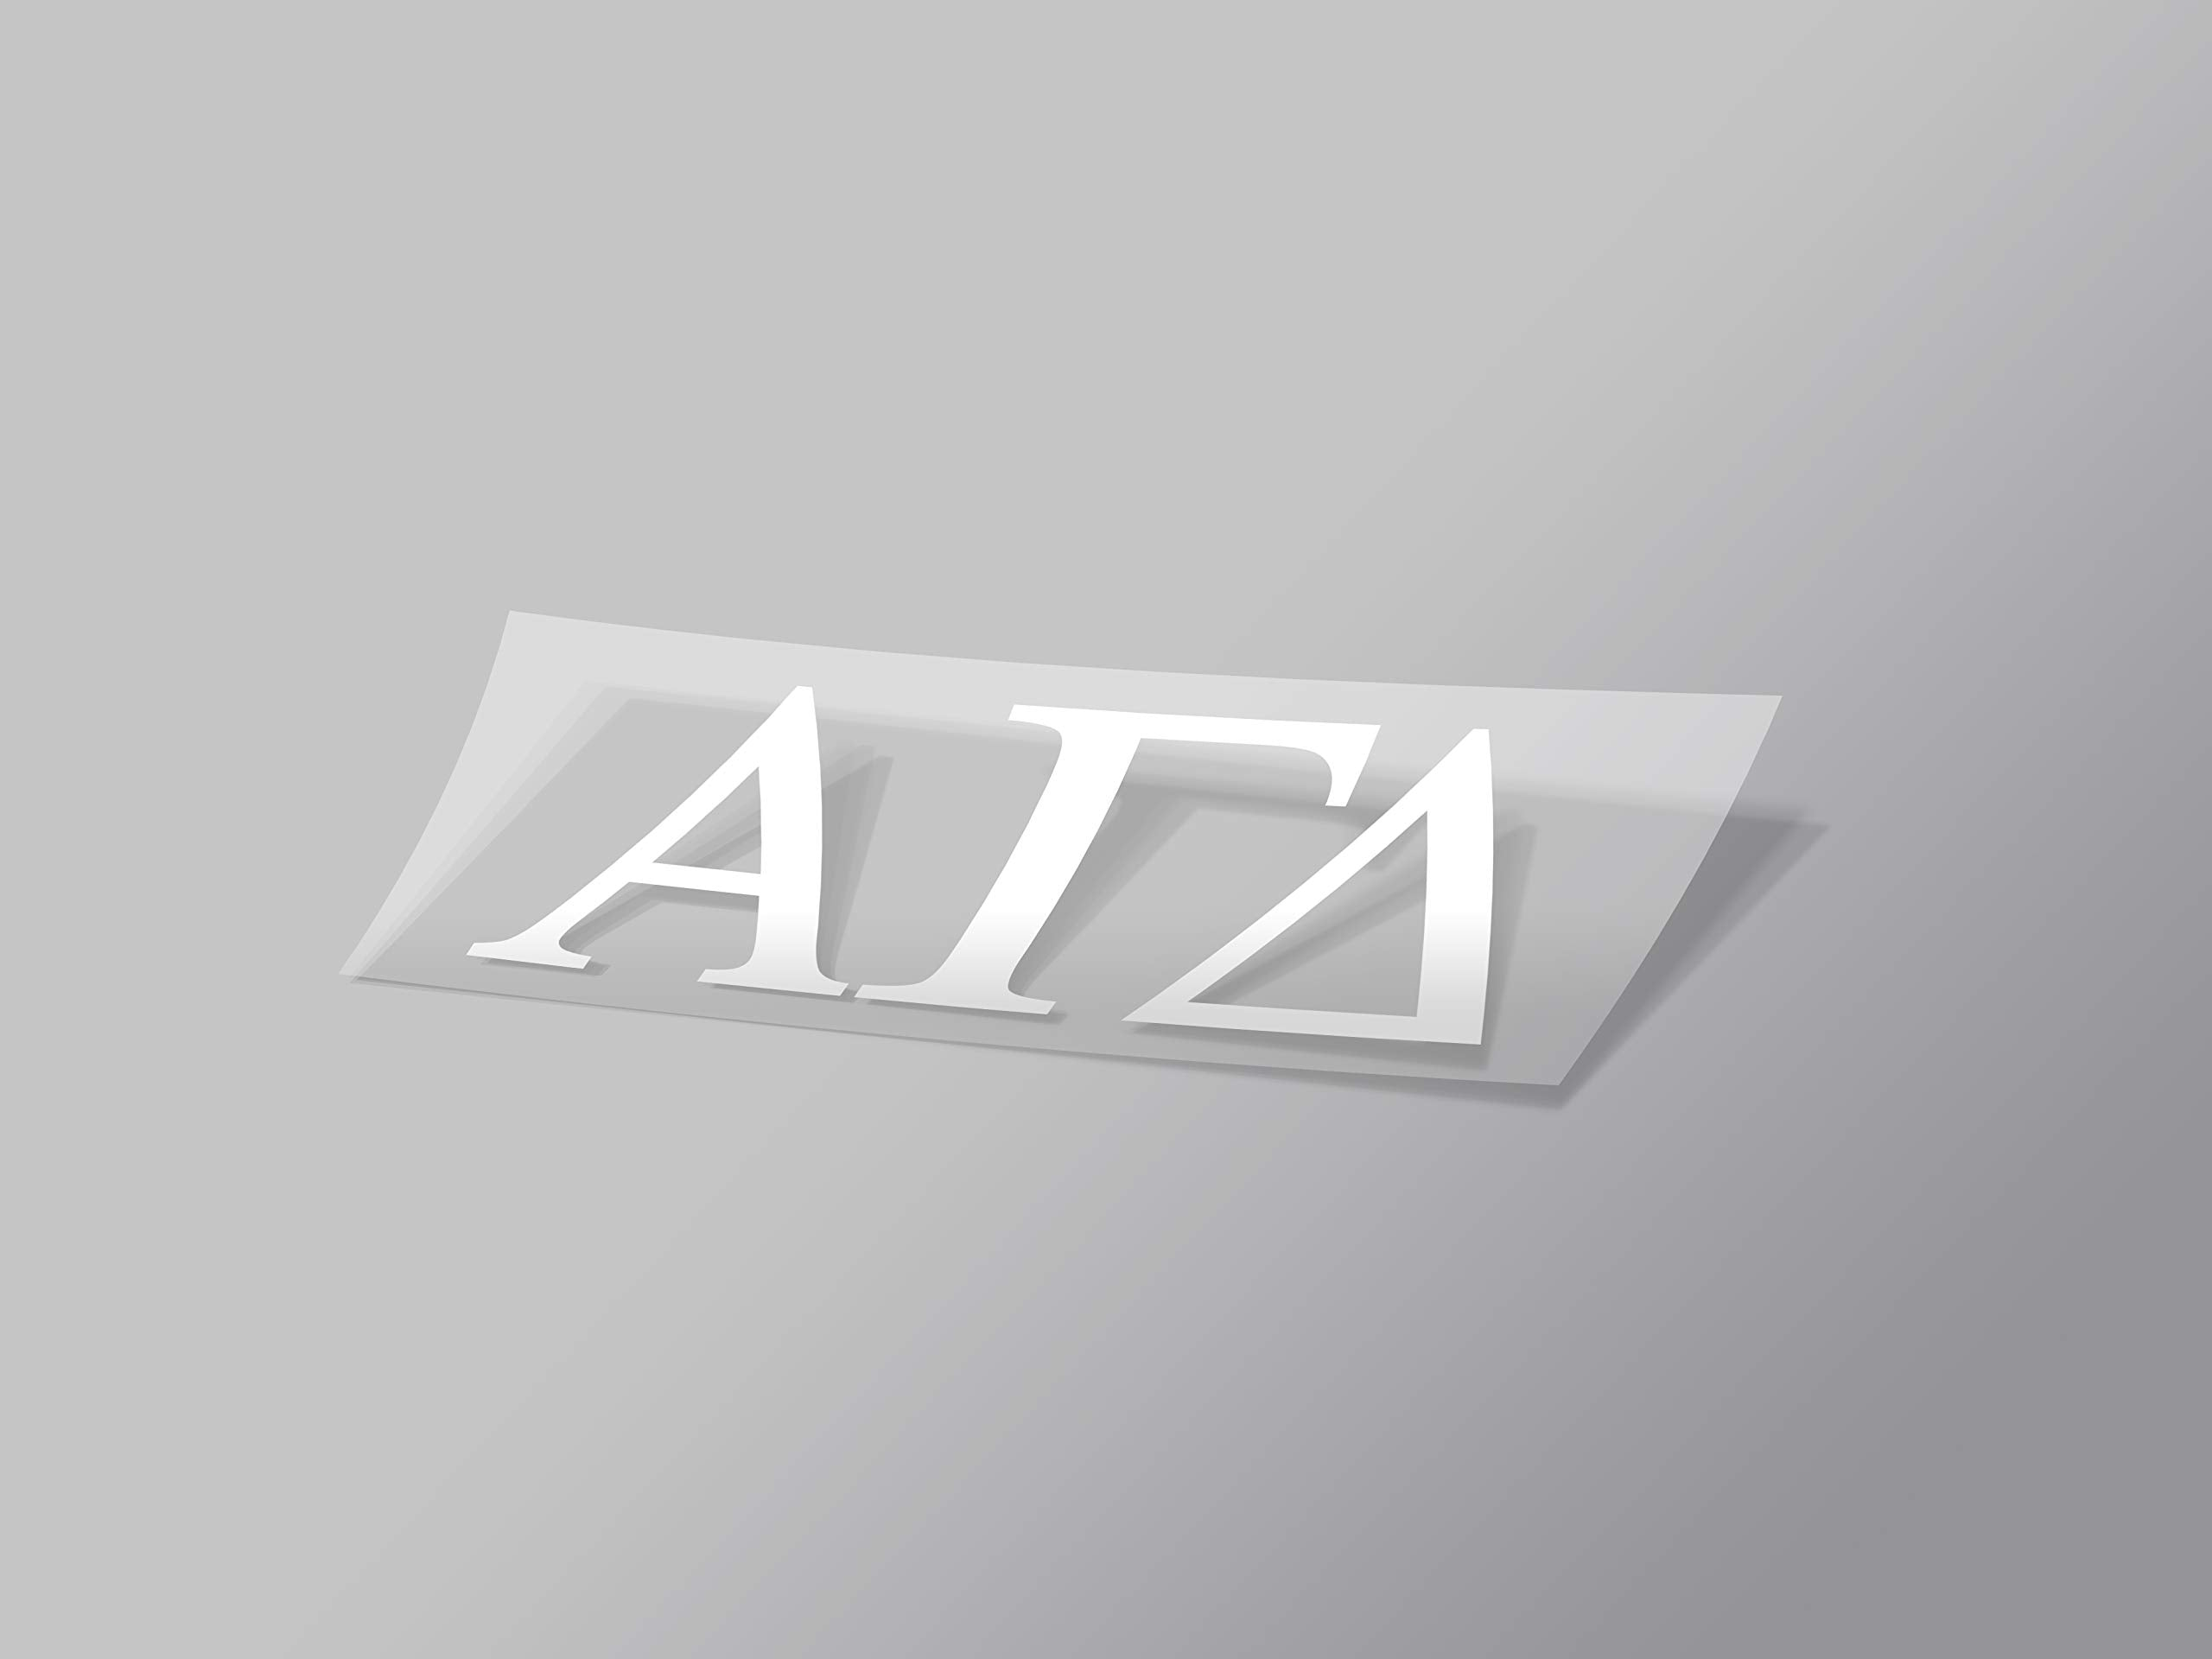 "Alpha Gamma Delta Sticker Greek Sorority Decal for Car, Laptop, Windows, Officially Licensed Product, Monogram Design 2.5"" Tall - White"